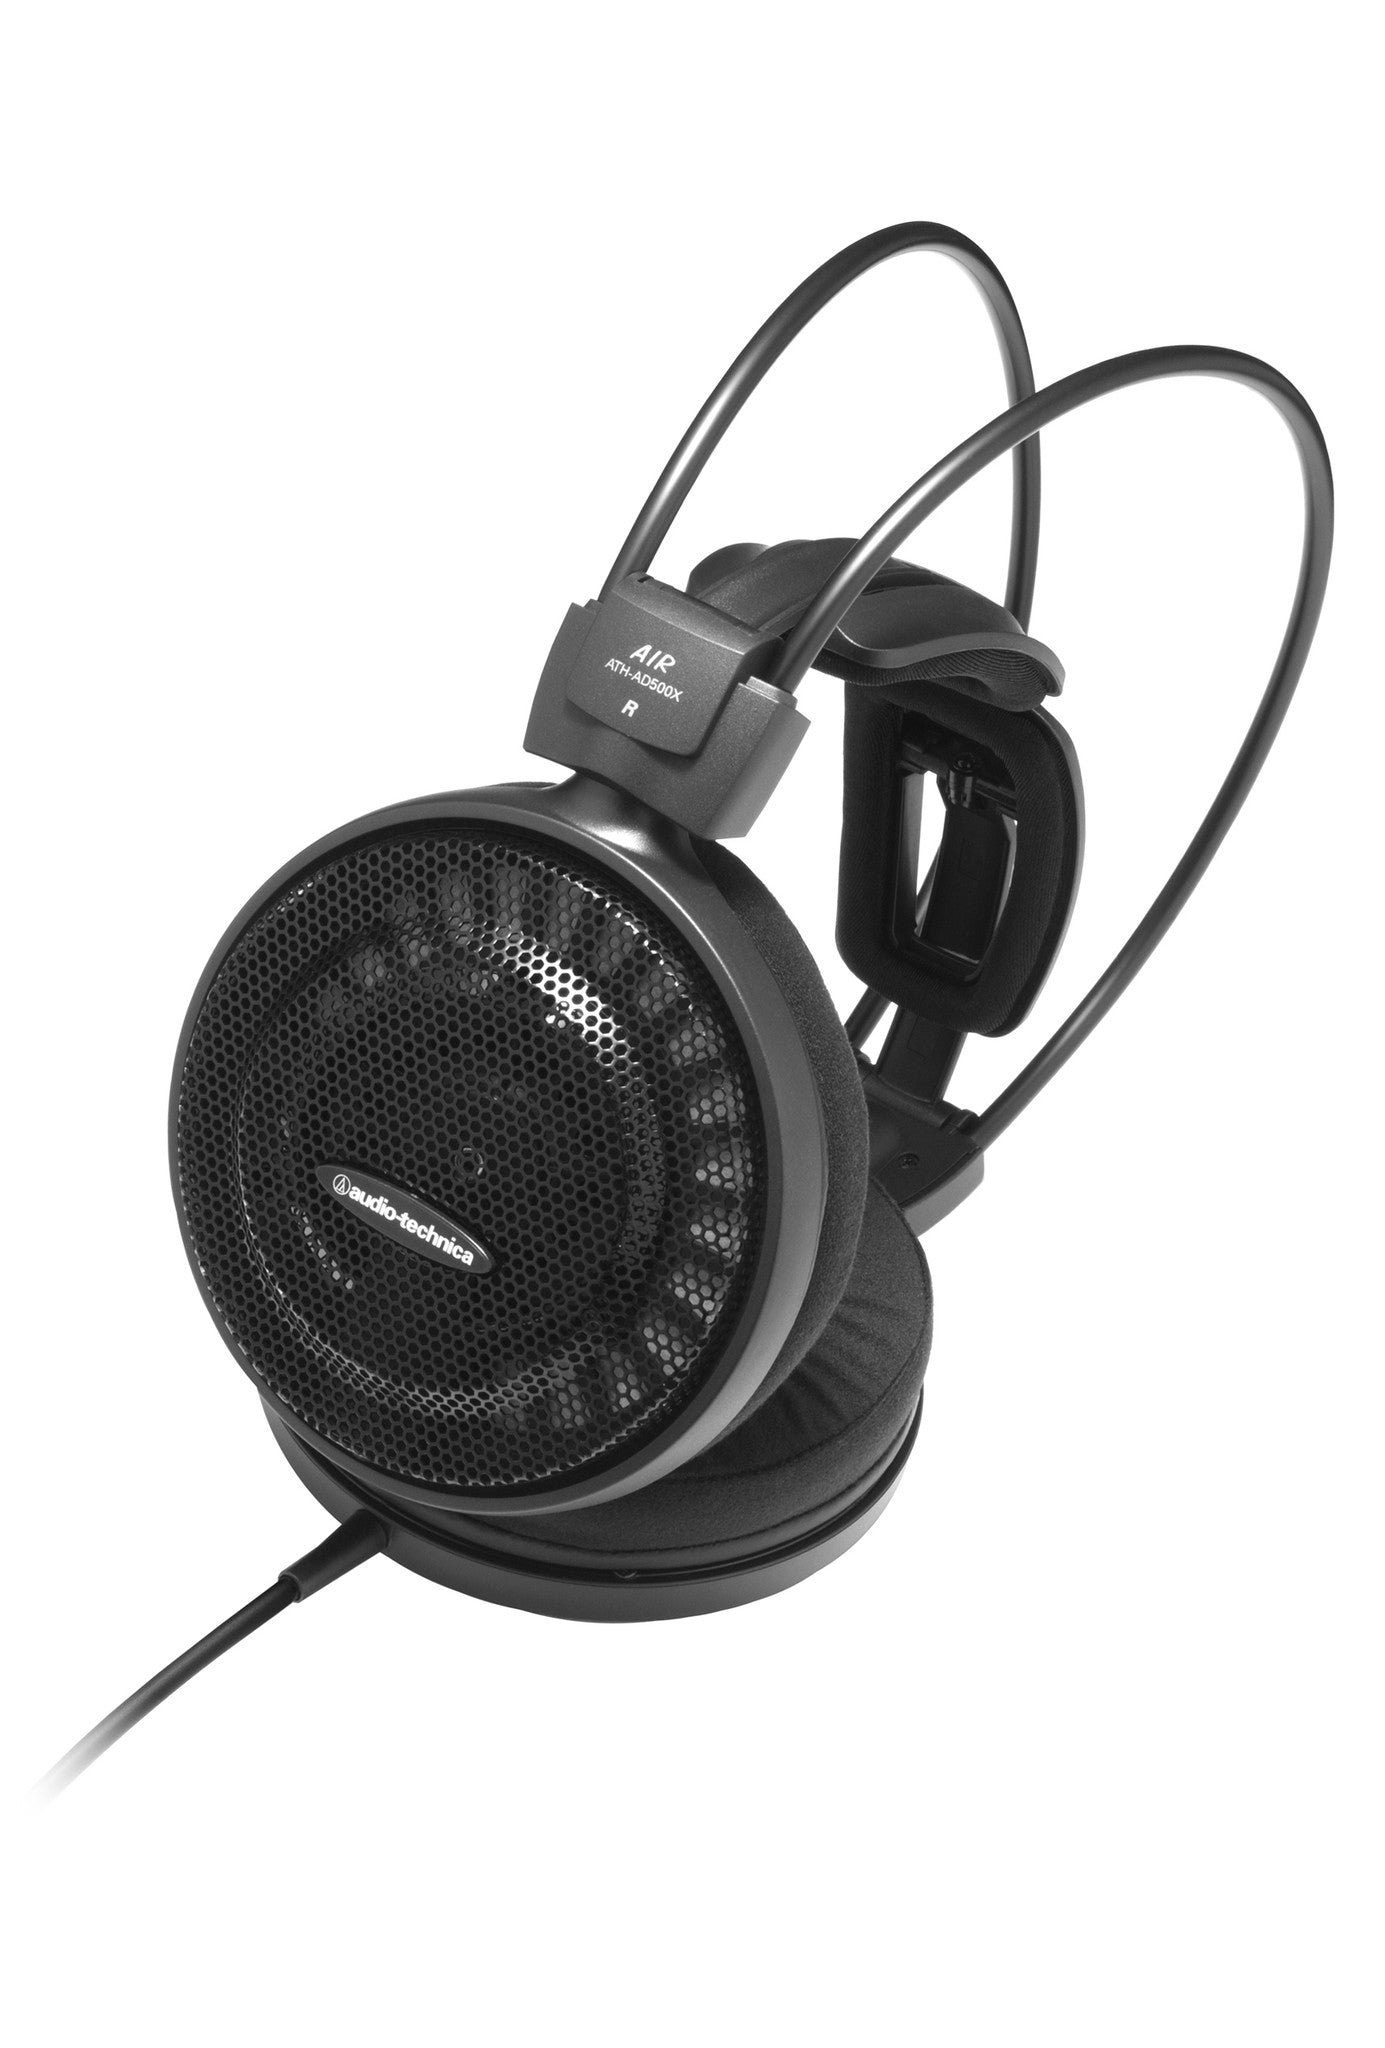 Audio Technica ATH-AD500X Audiophile Open-air Headphone